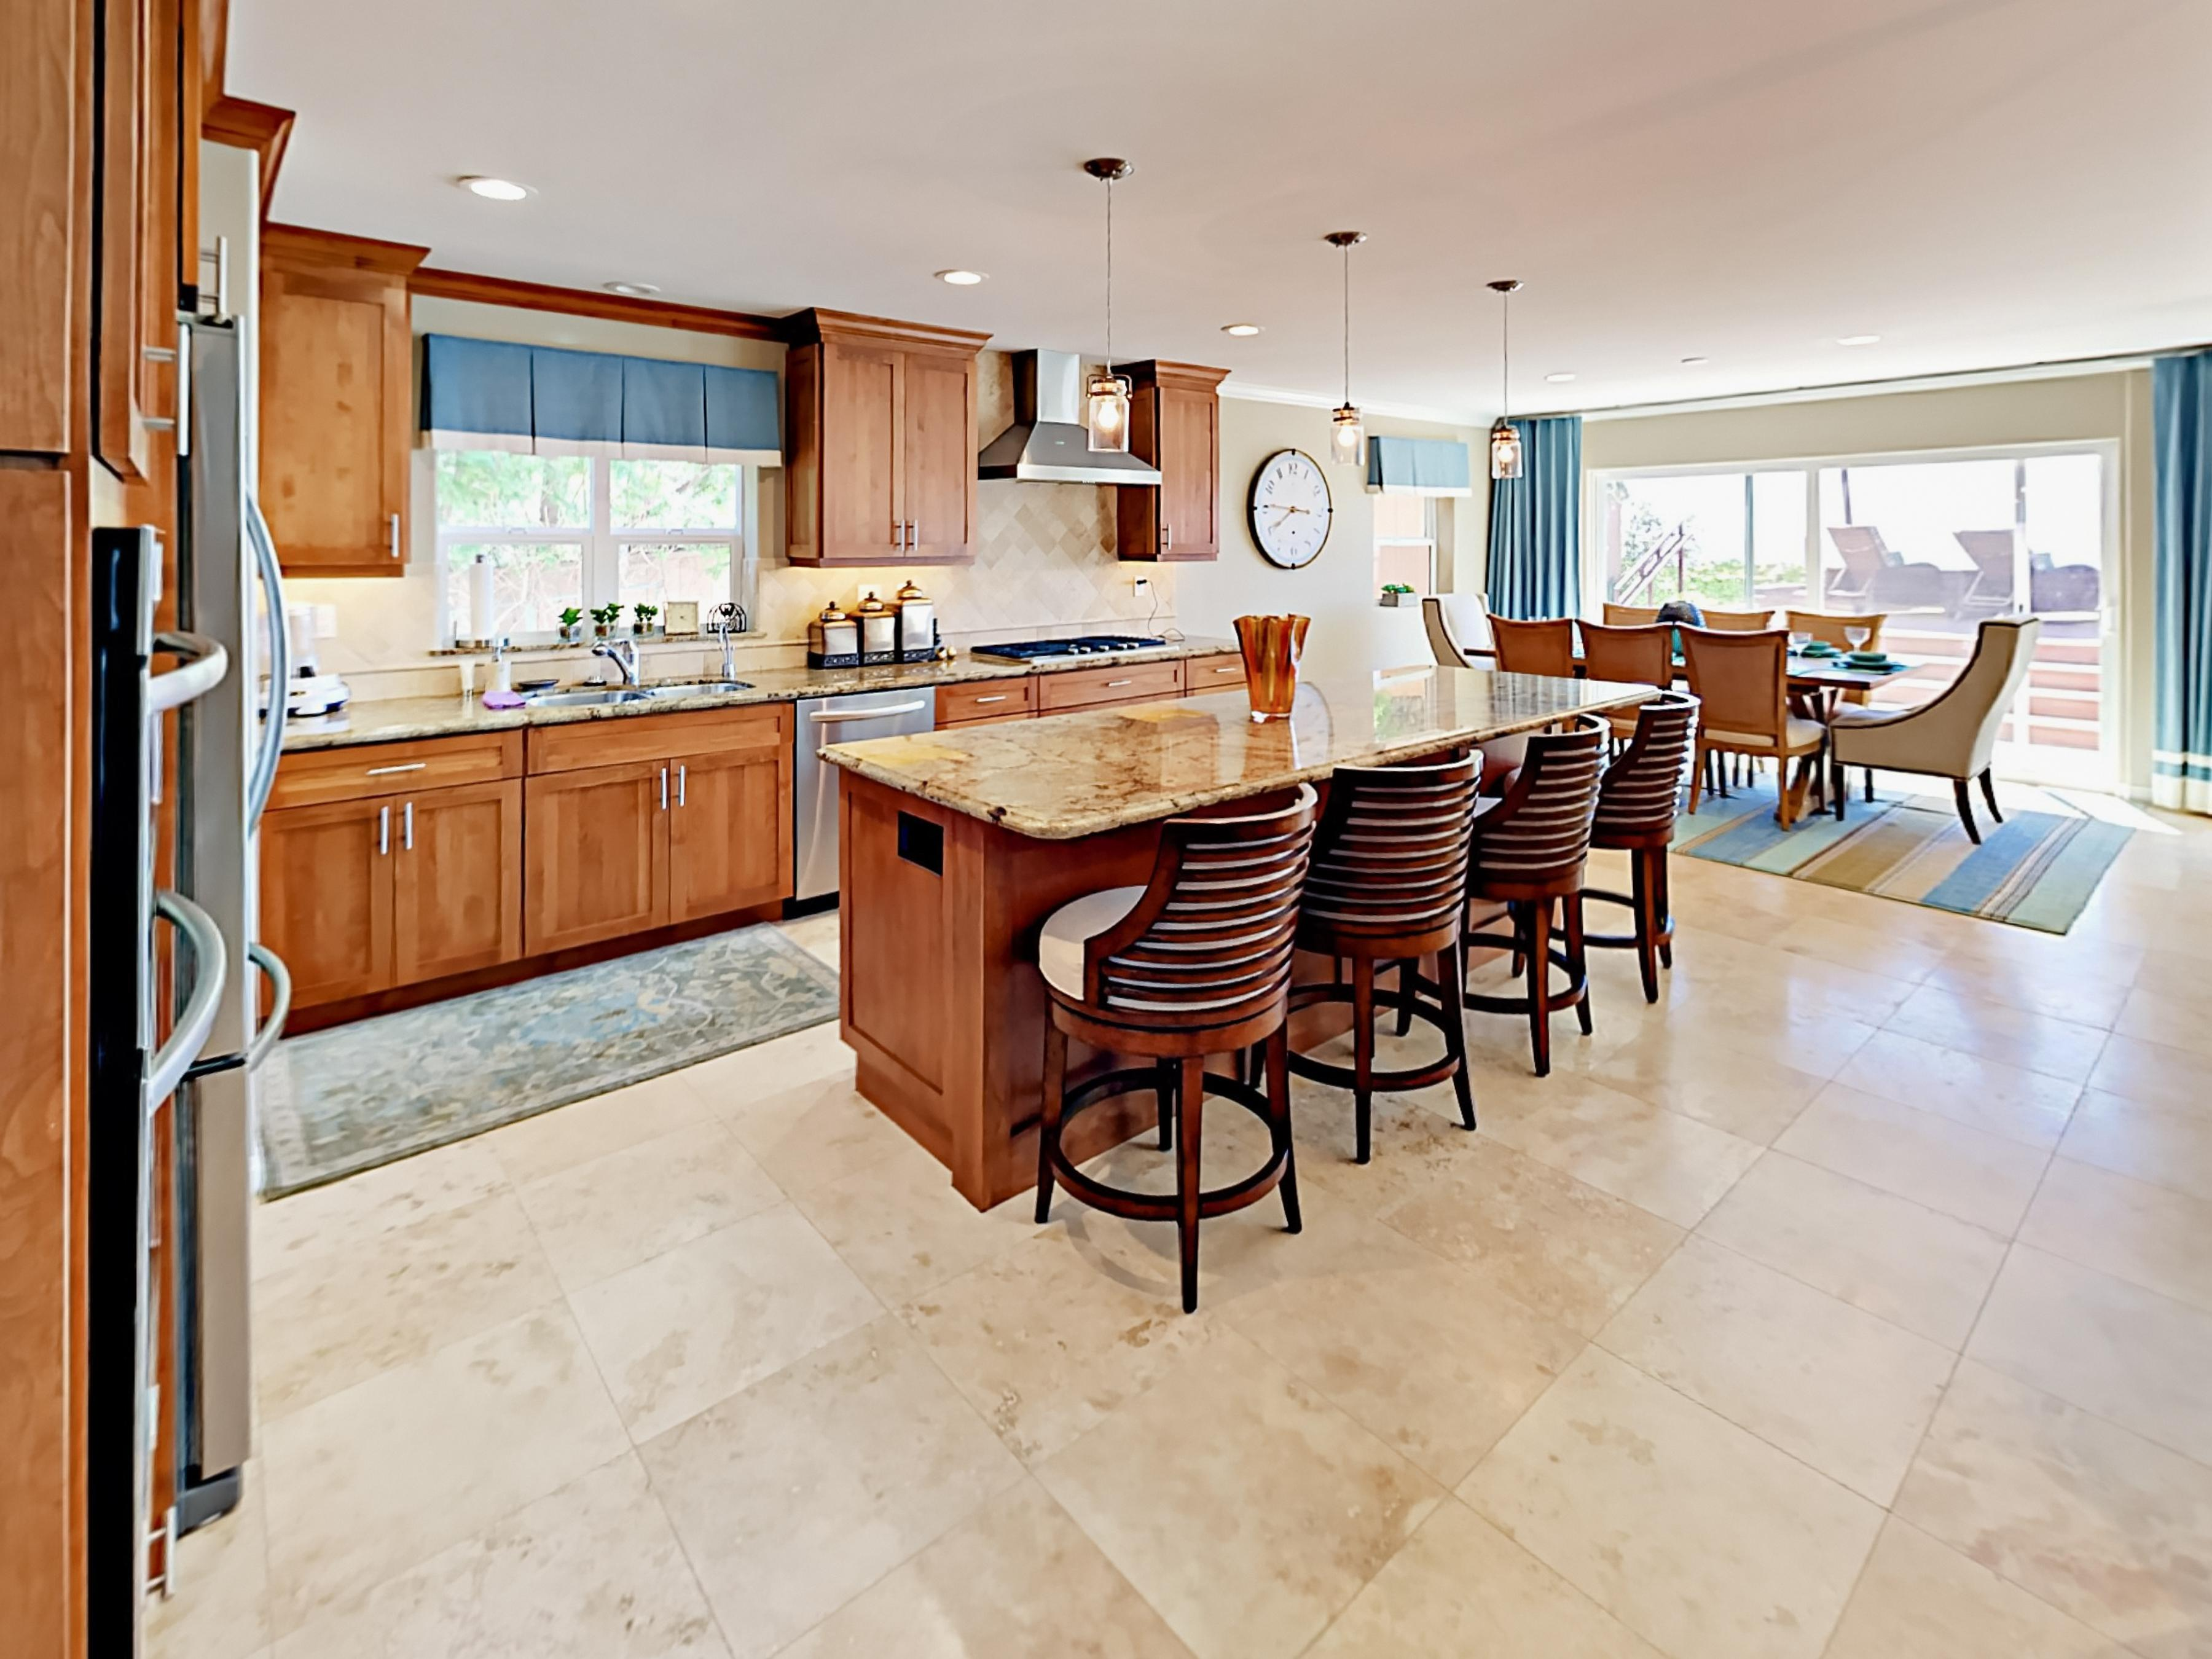 The gourmet kitchen features granite countertops, stainless steel appliances, and a pantry.